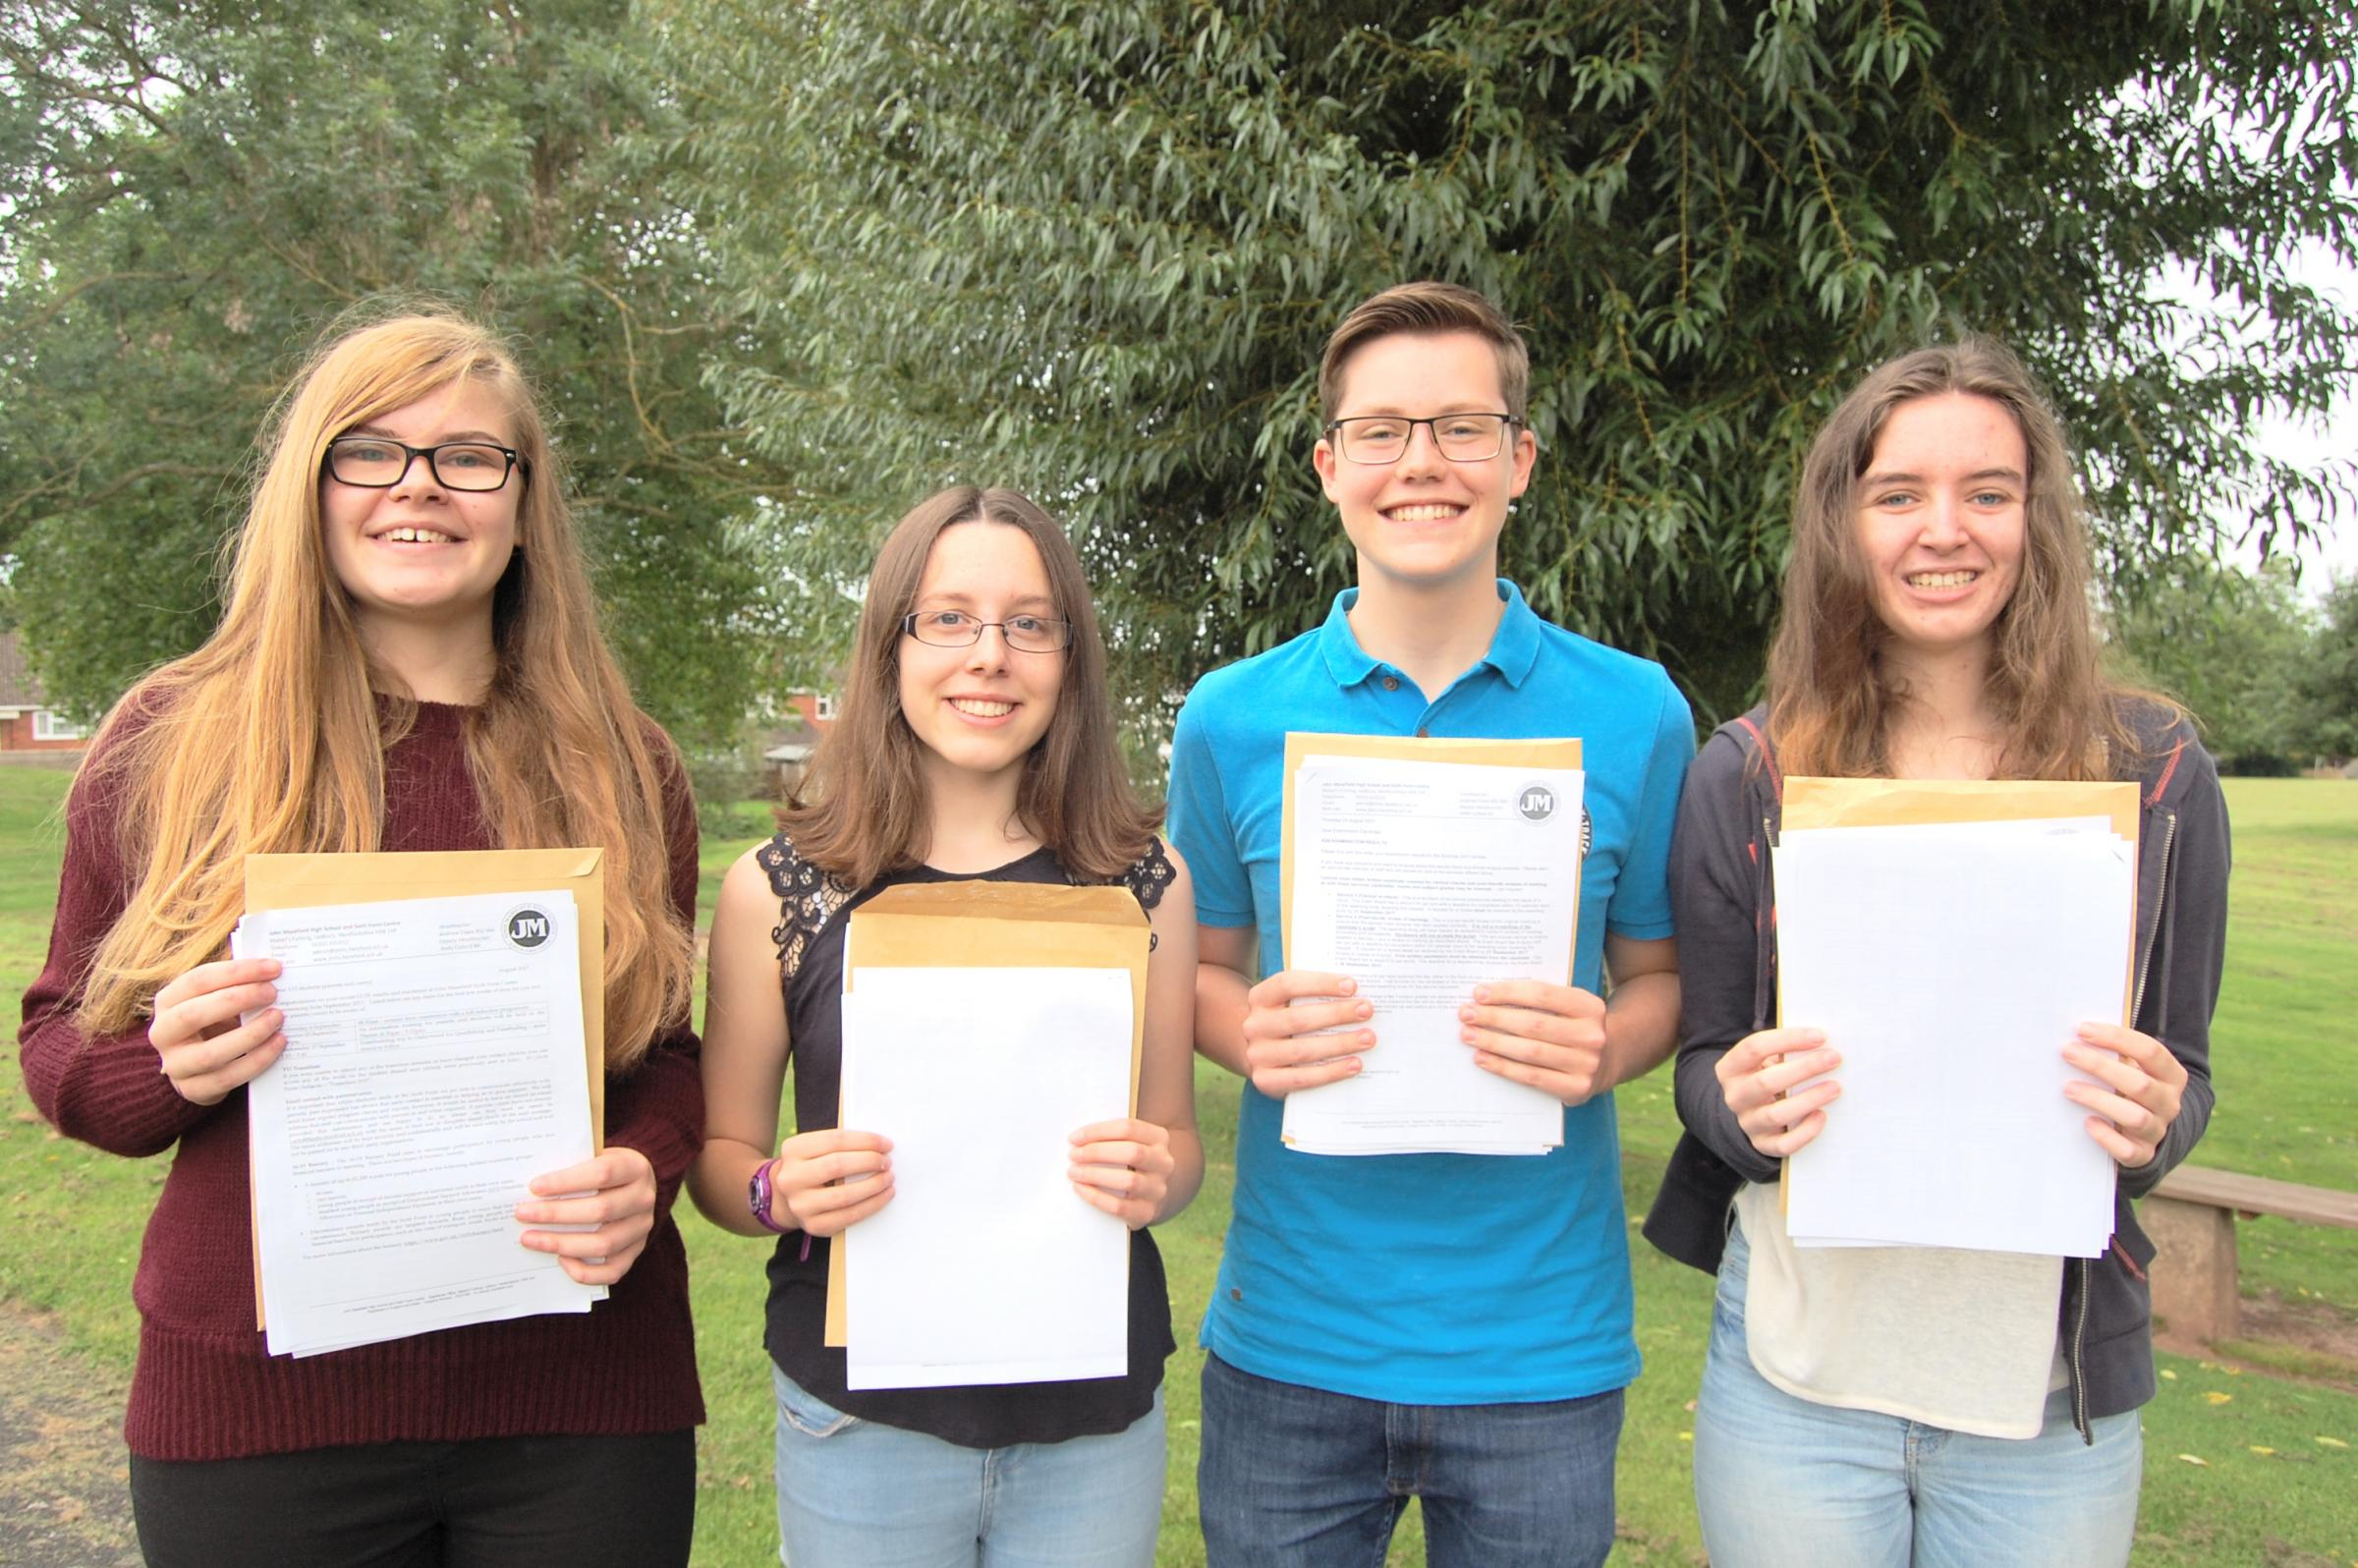 All smiles for these JMHS students, on GCSE day